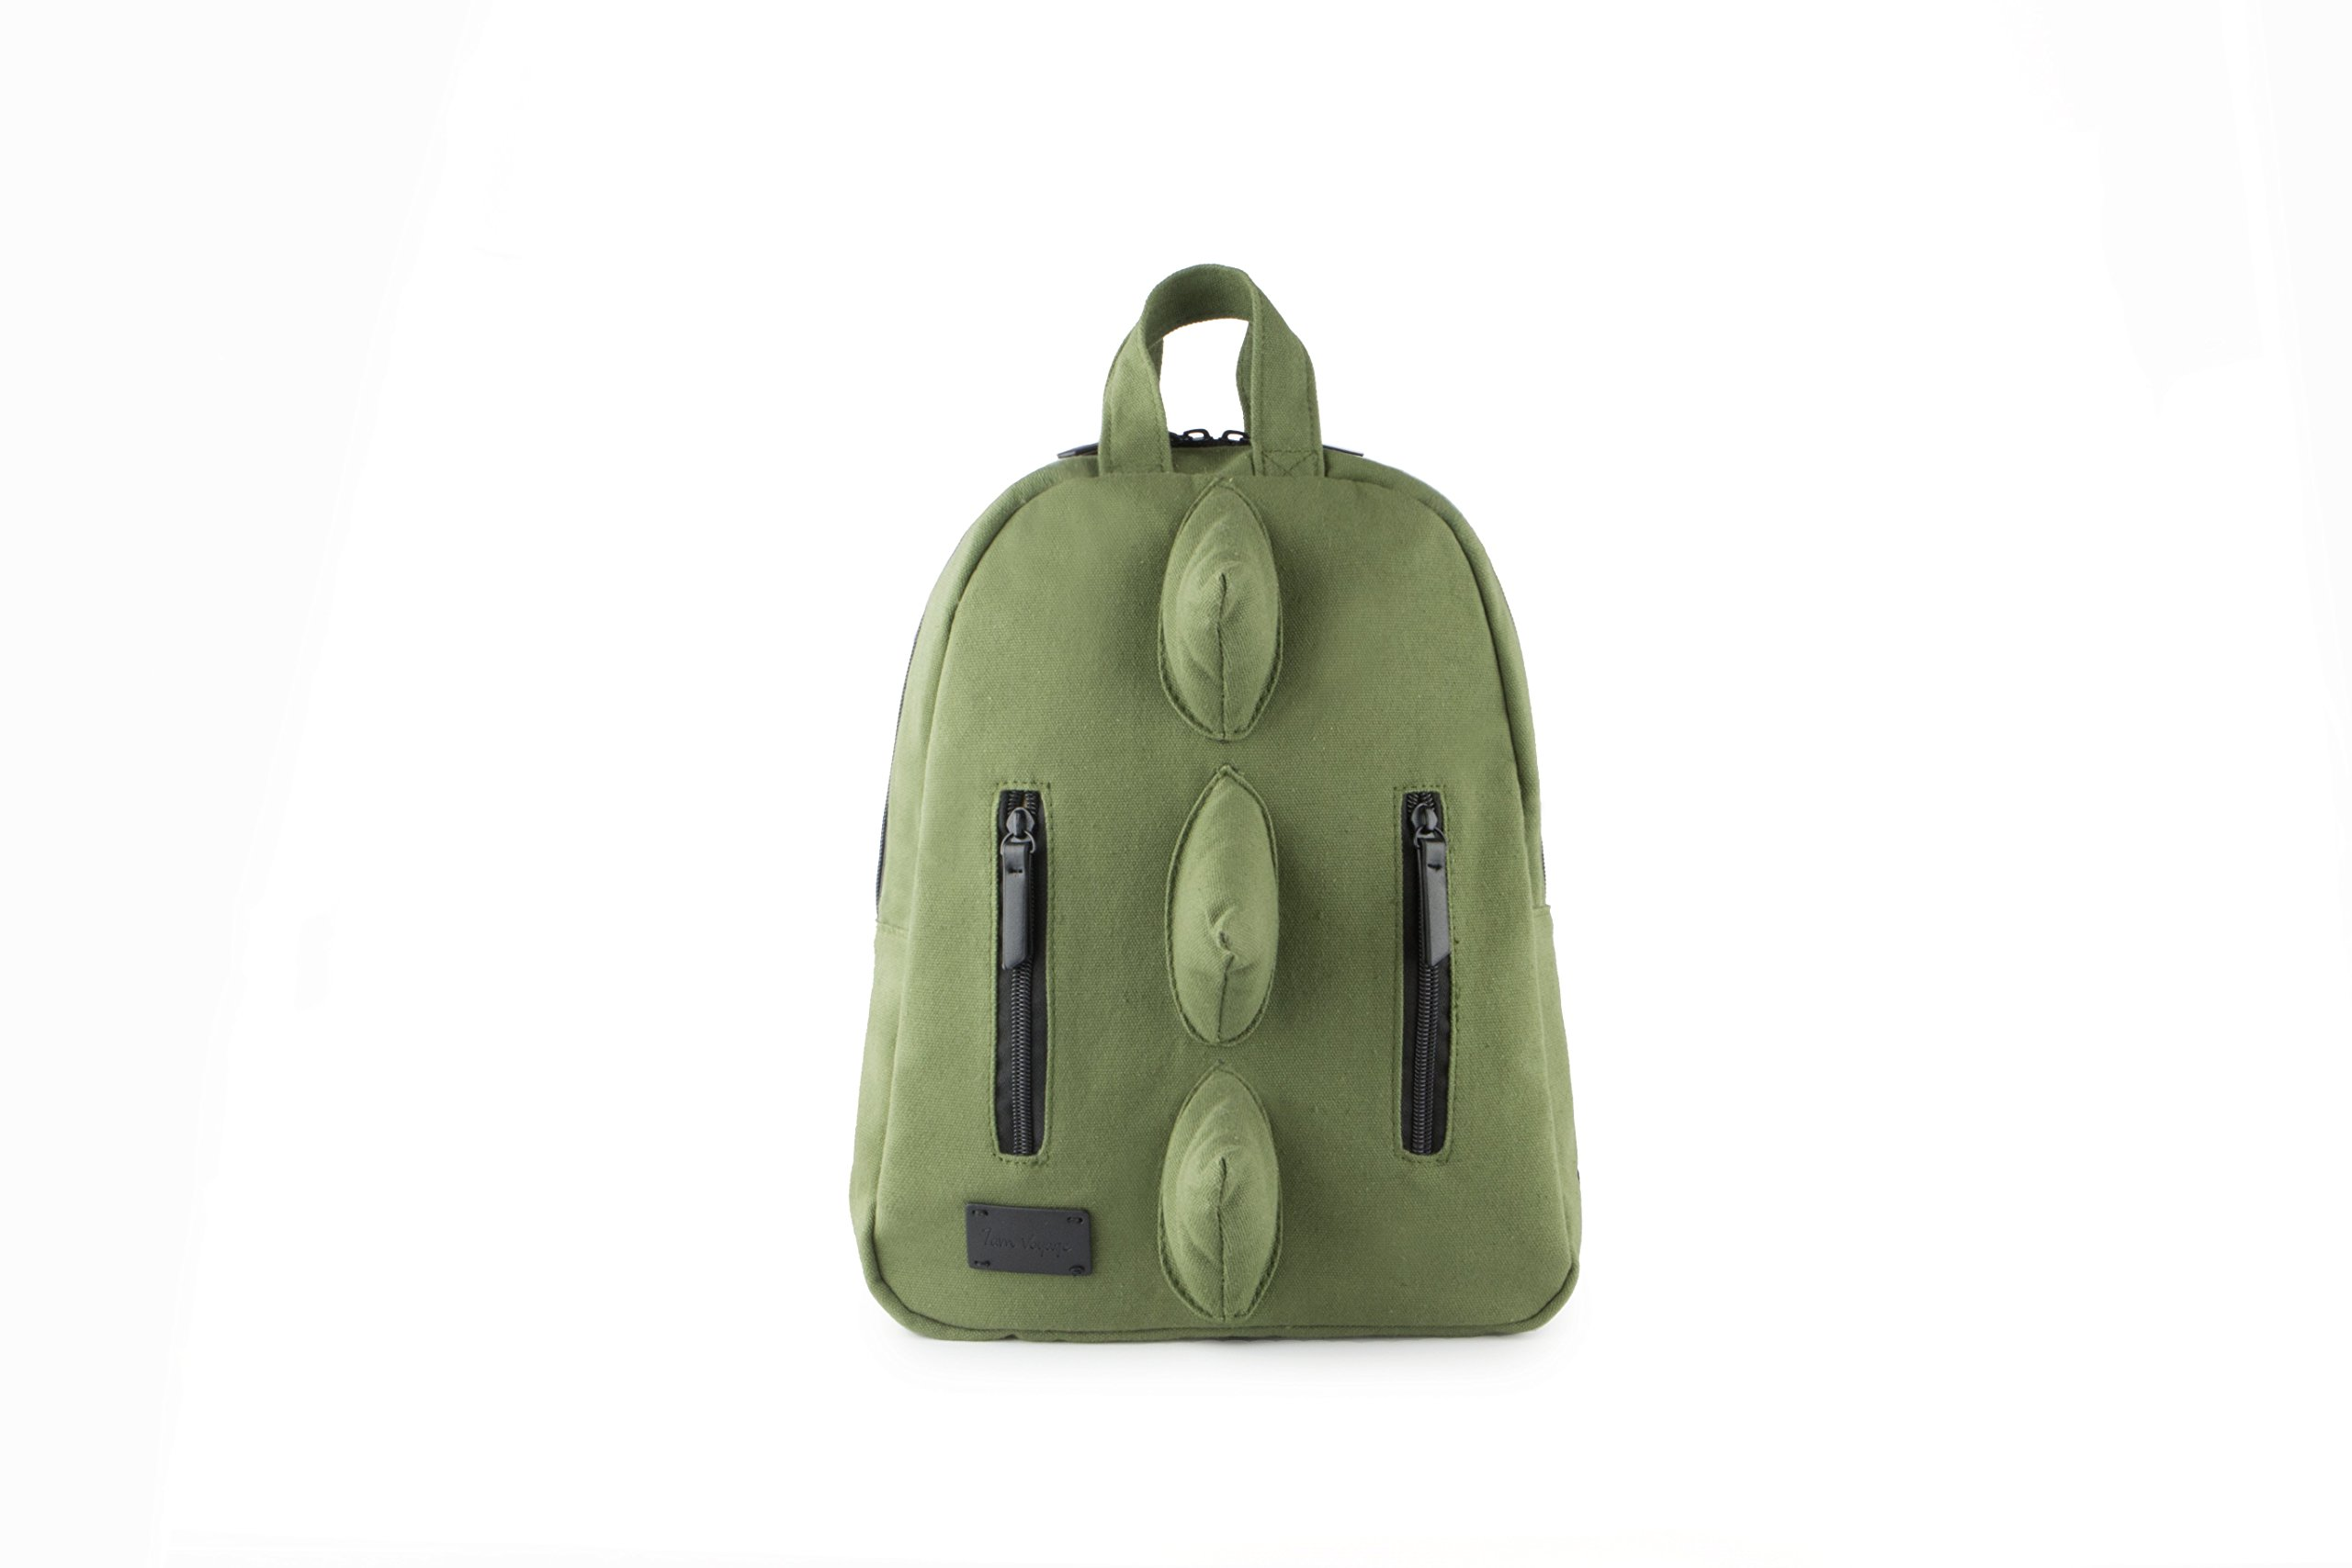 7AM Voyage Mini Dino Cotton Backpack, Unisex Toddlers, Kids and Teens School Backpack, (Army)